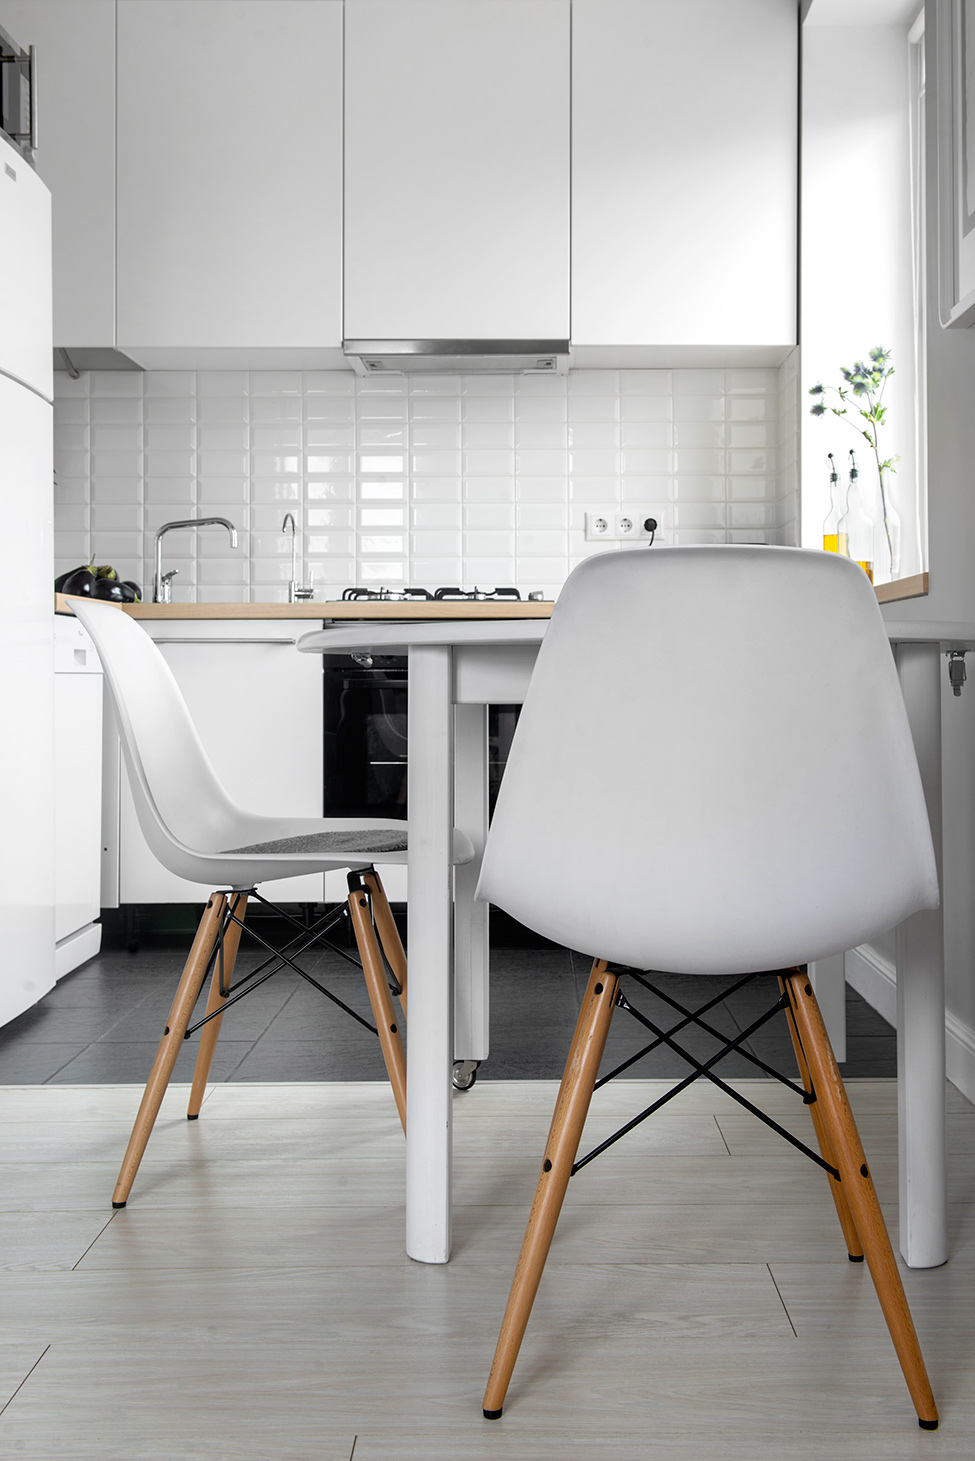 kitchen chairs modern photo - 3